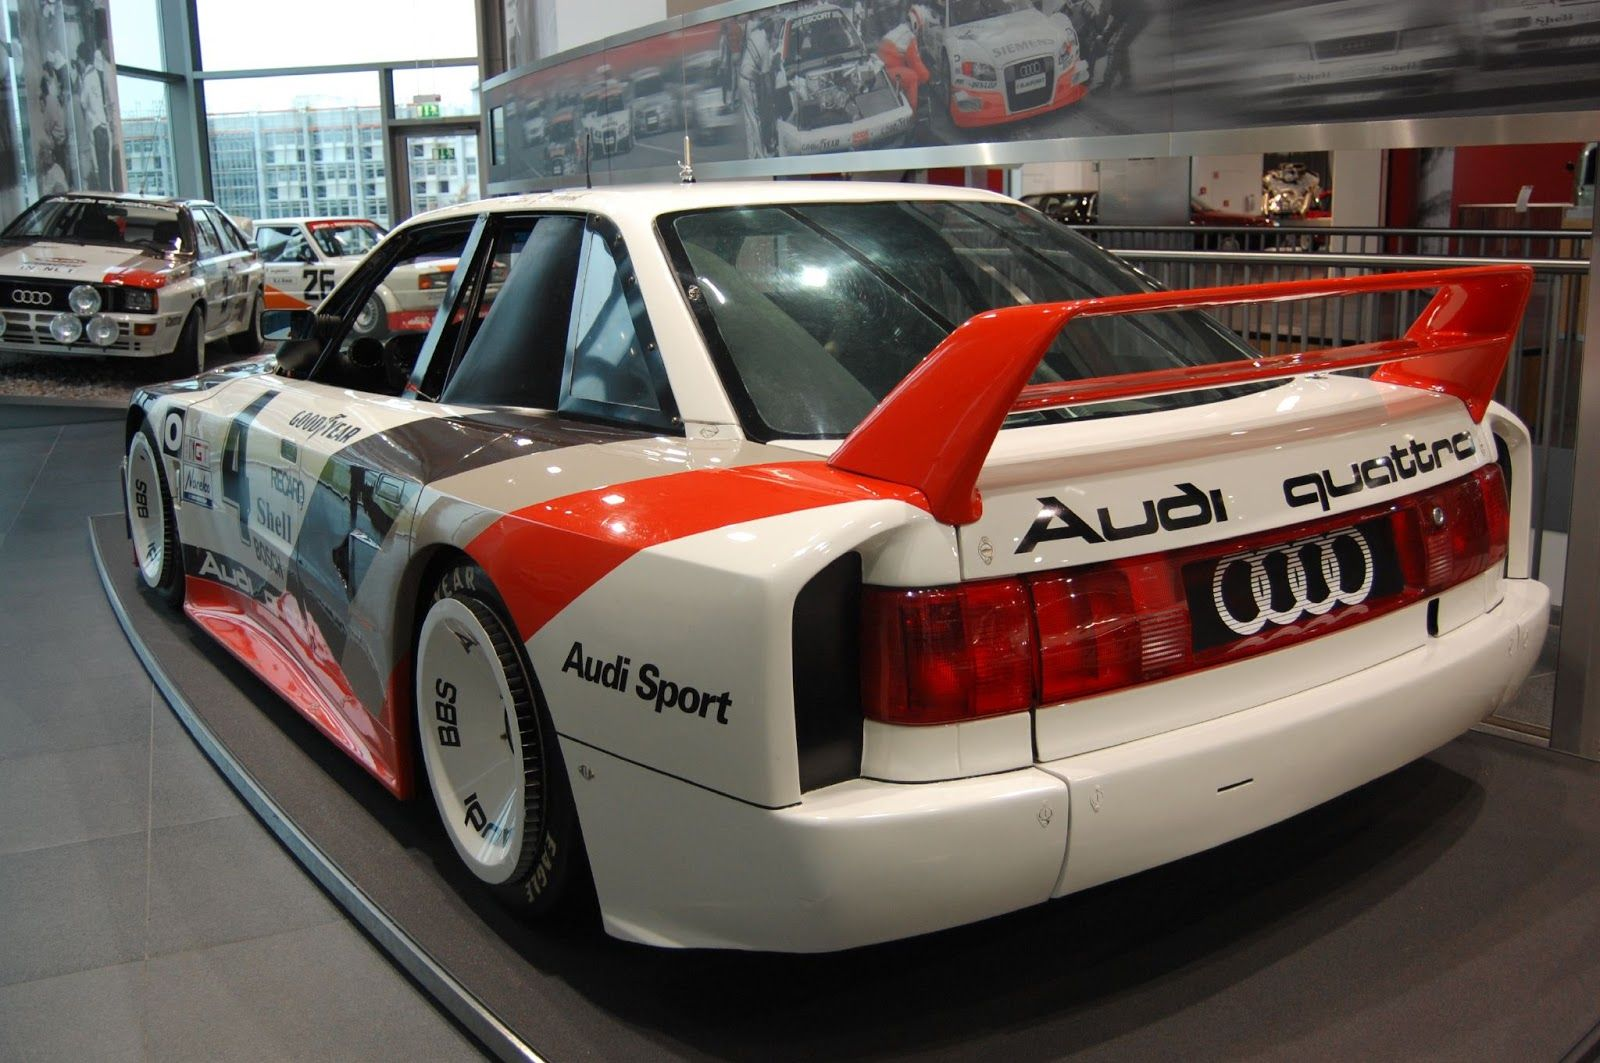 Gorgeous Audi 90. Look at those rims.